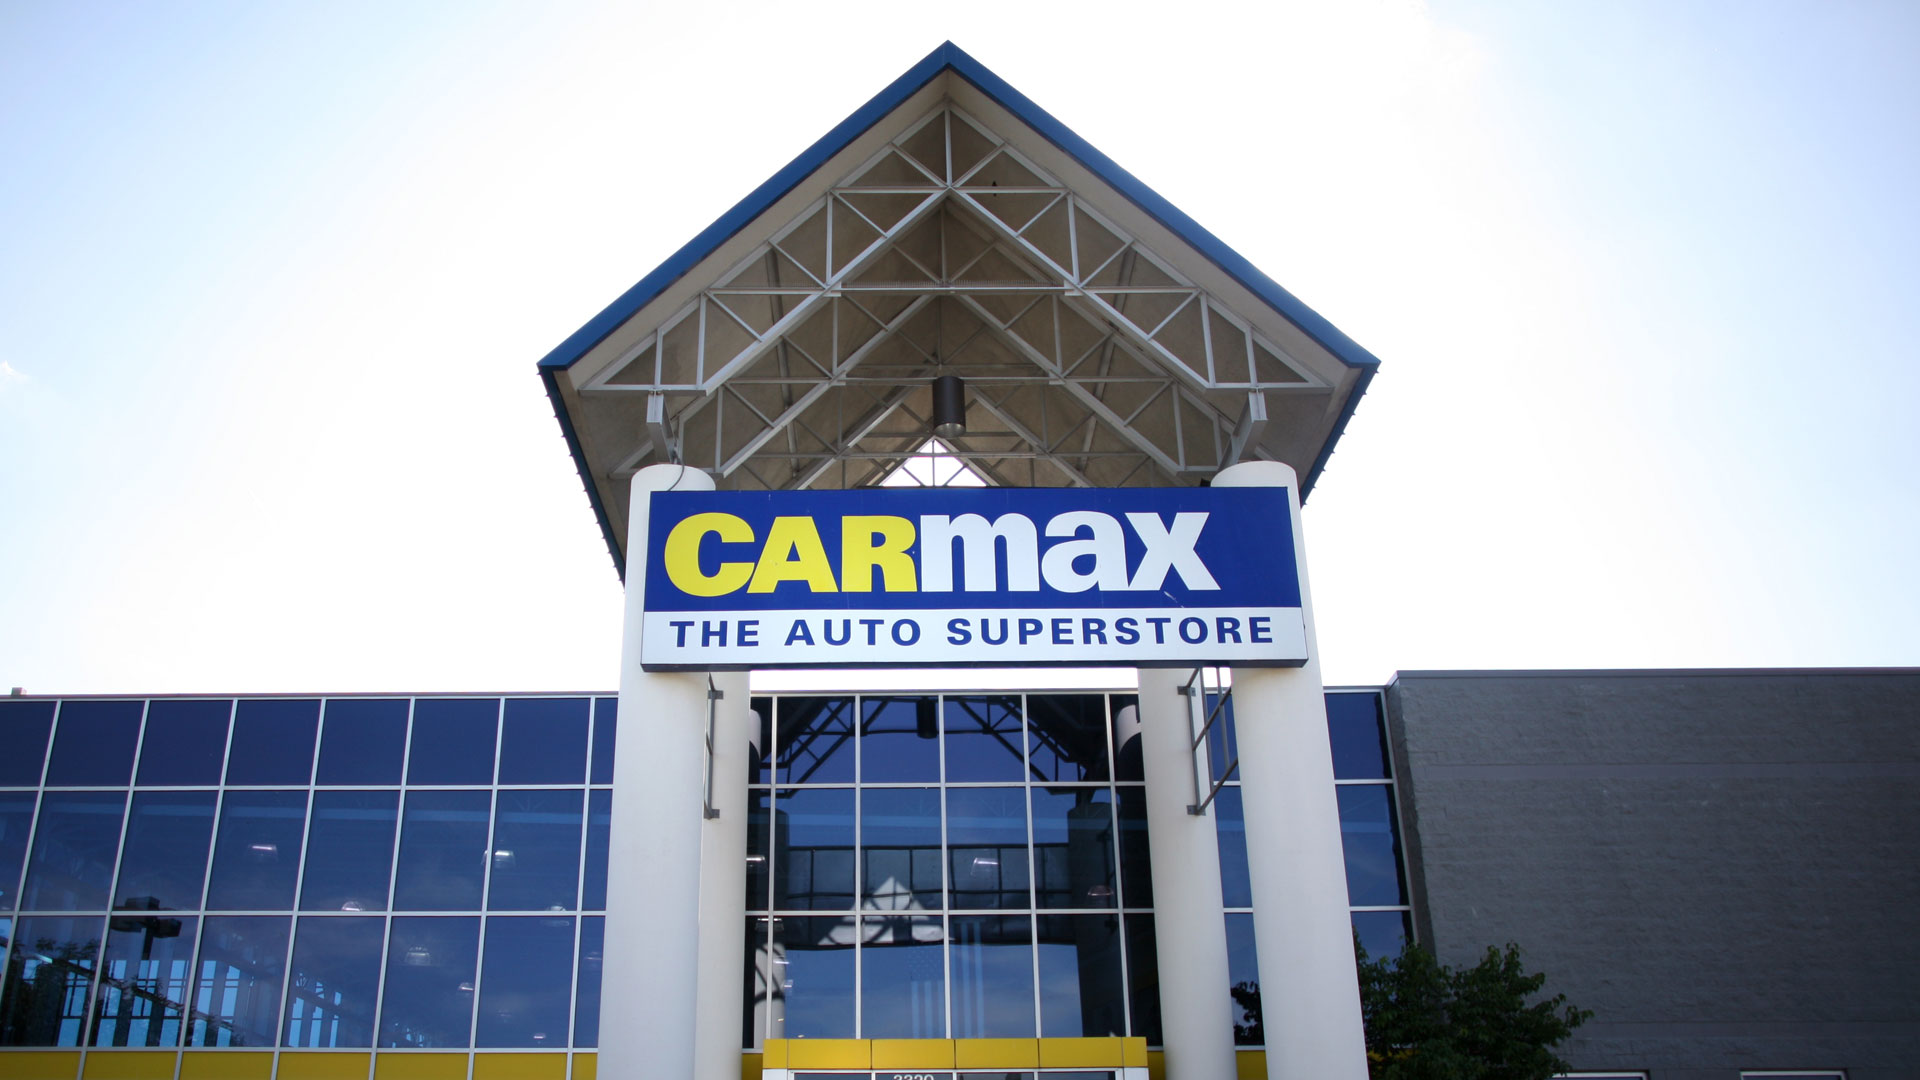 CarMax storefront picture